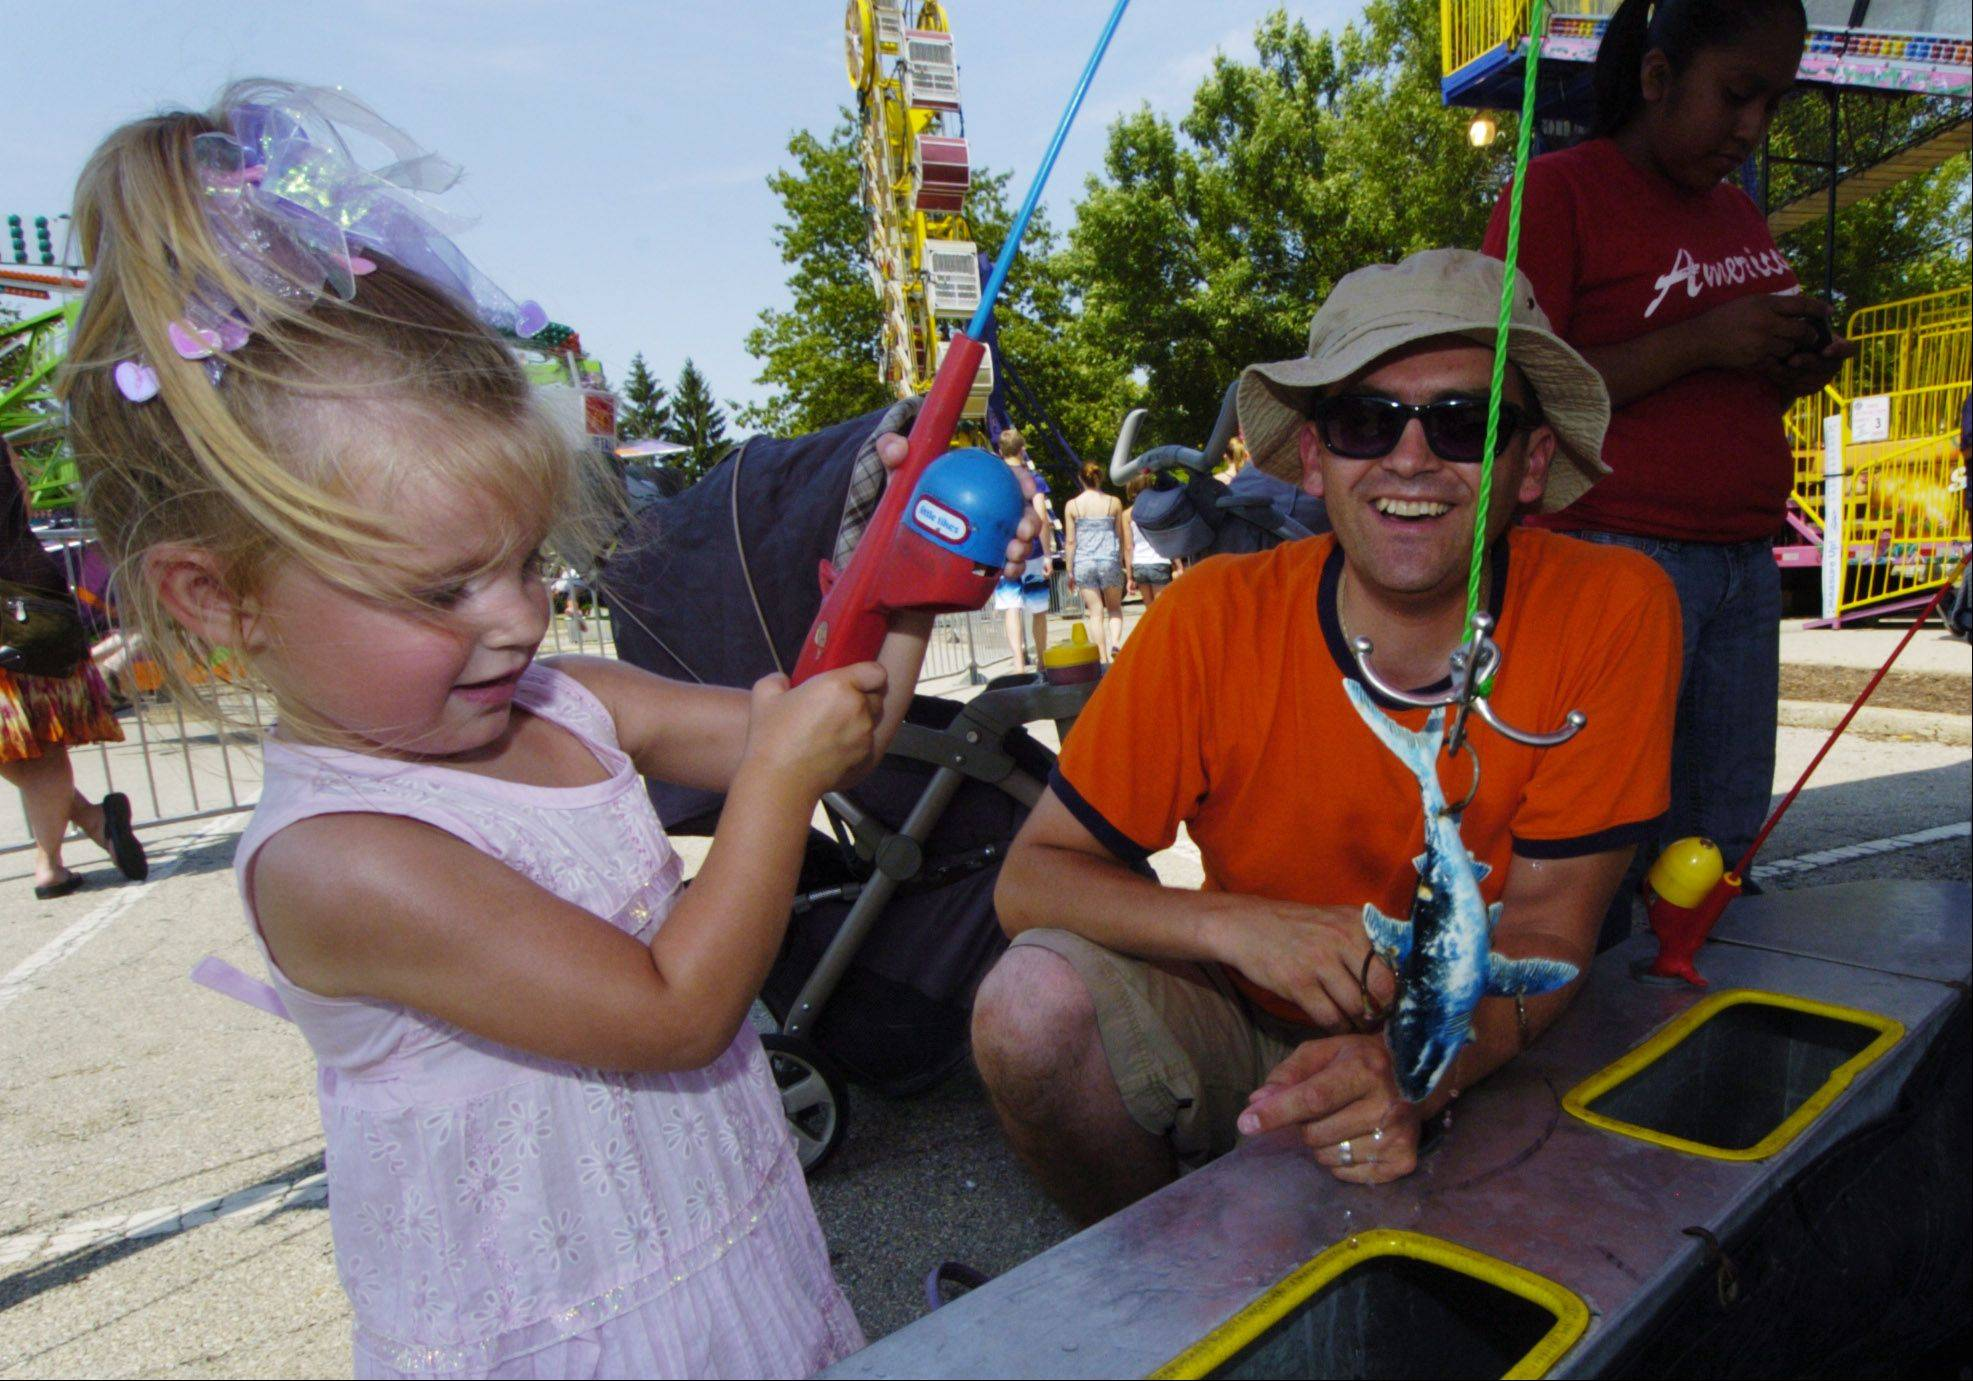 Karolina Sen, 2, of Palatine catches a toy shark with the help of her dad, Piotr, during the Palatine Jaycees Hometown Fest Wednesday.